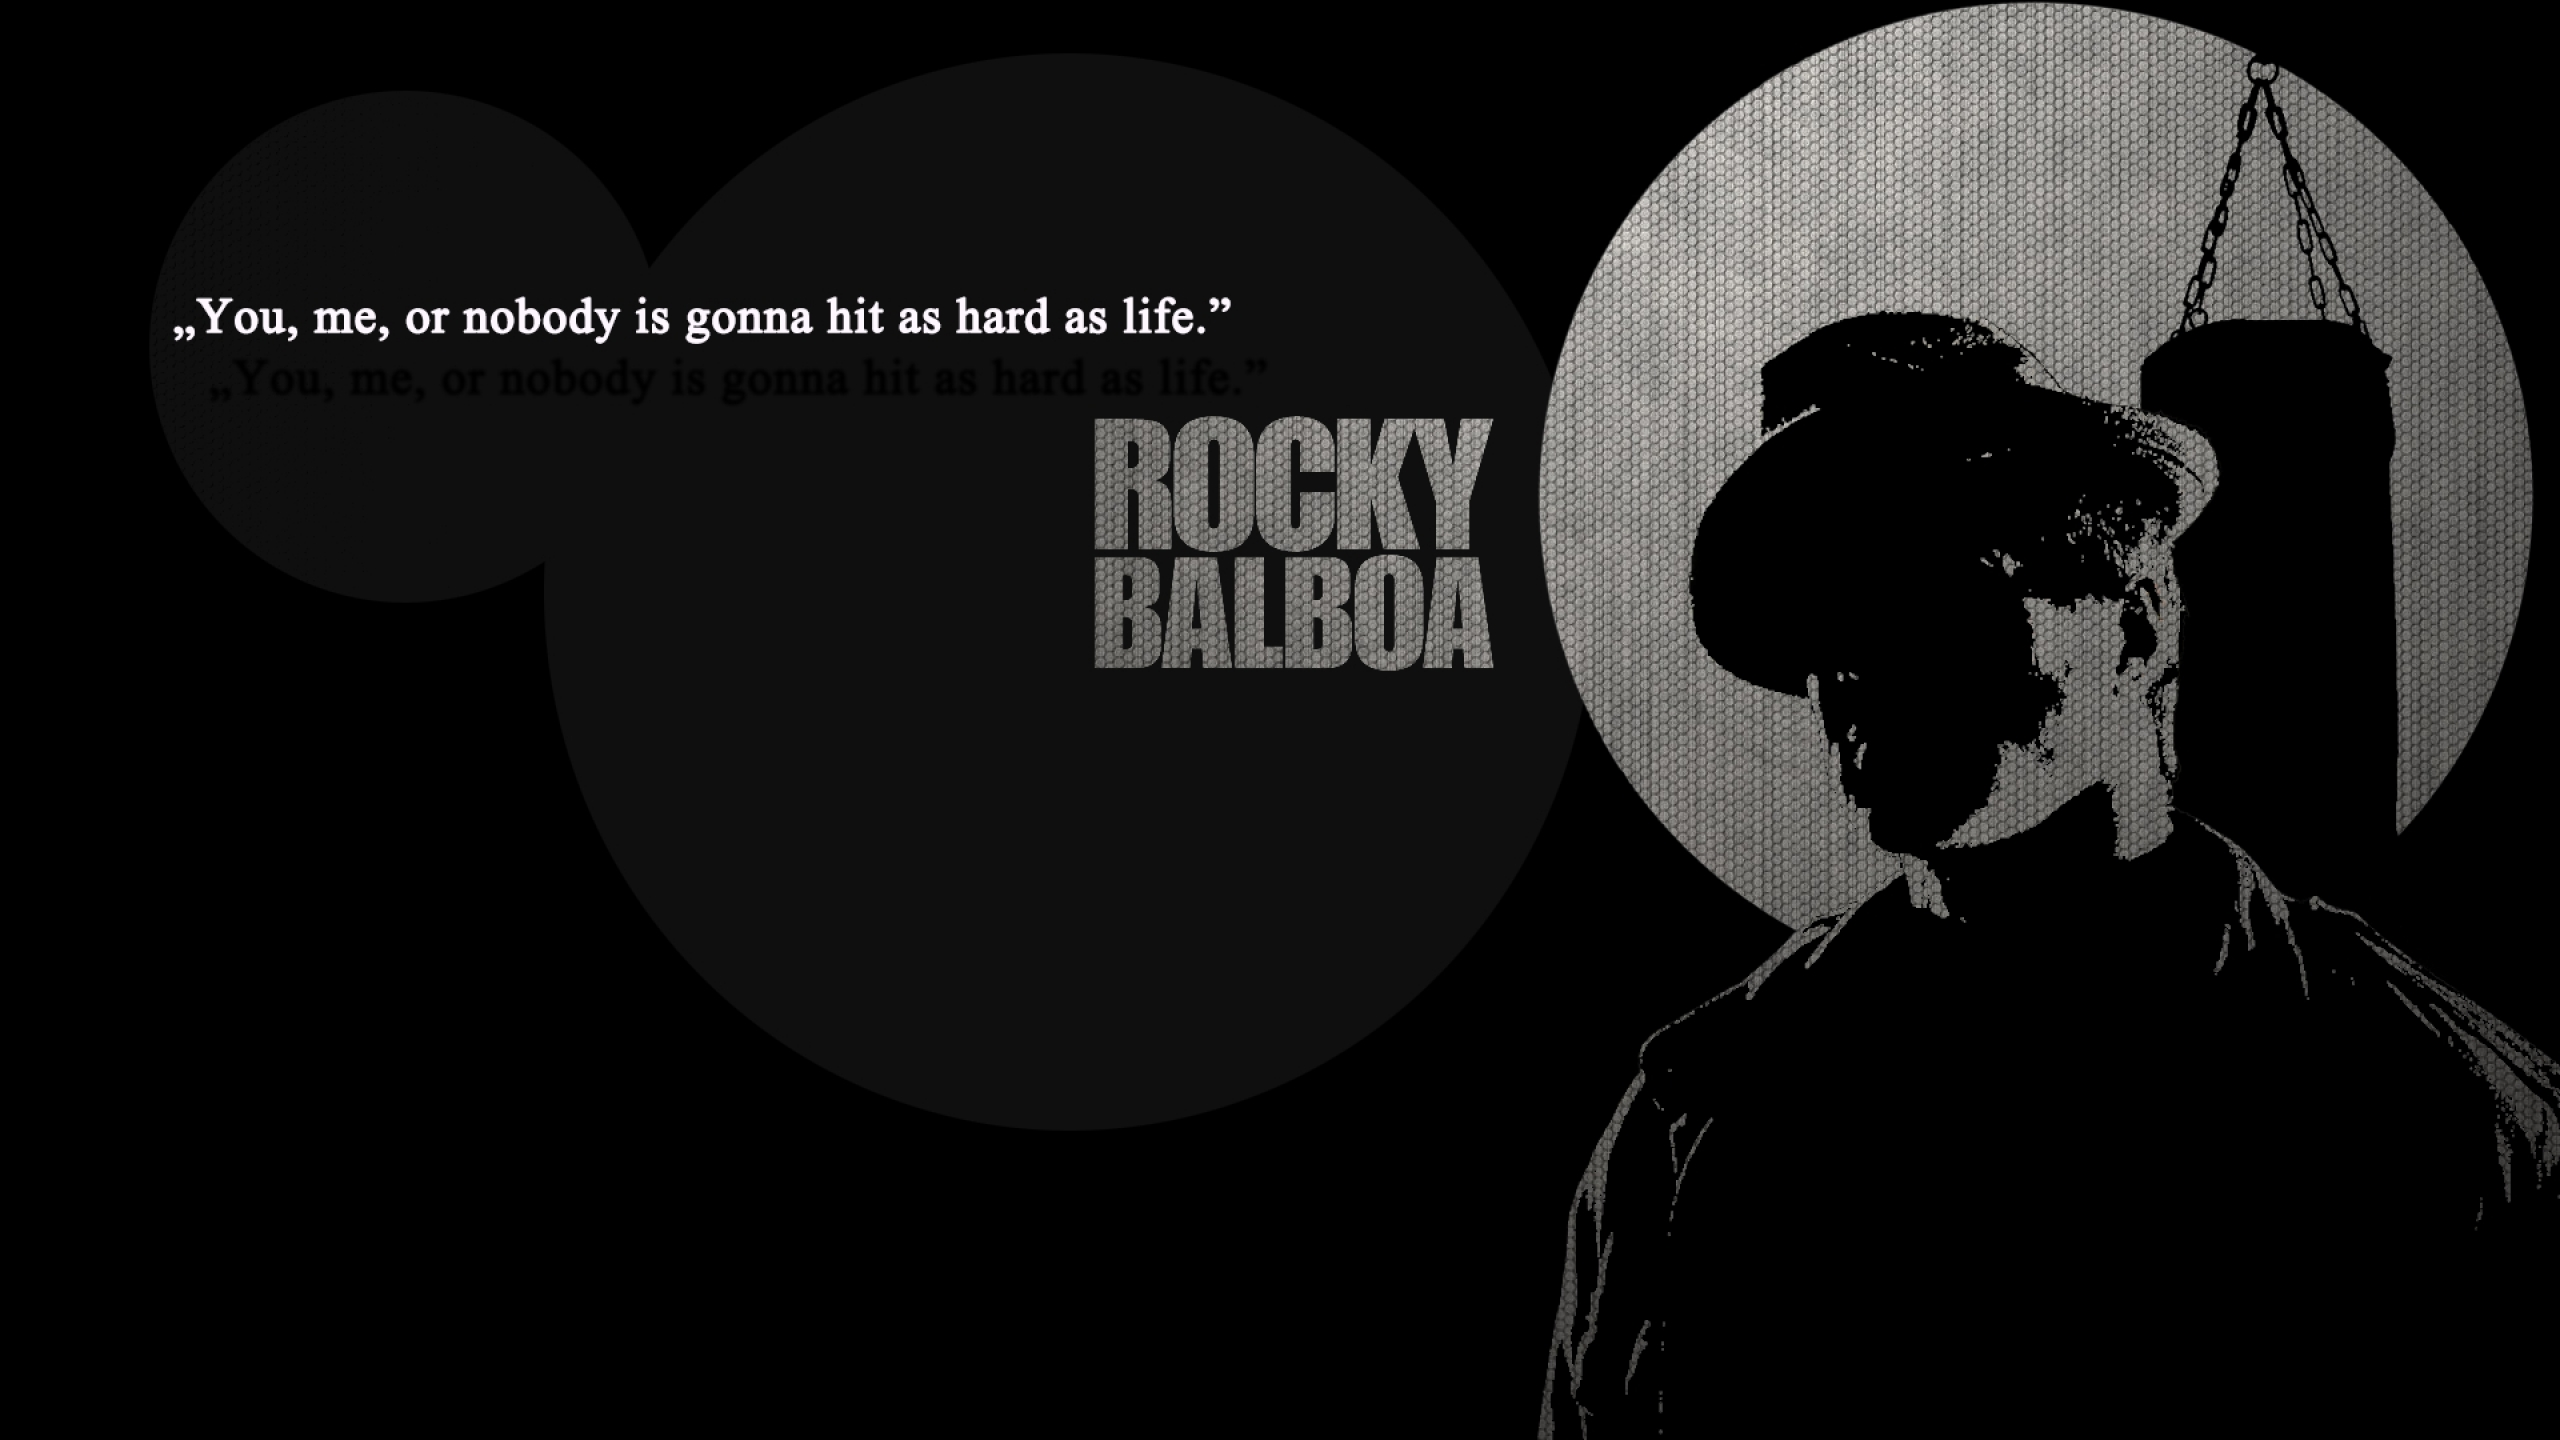 Rocky Balboa Life Is Hard Quote: You, Me, Or Nobody Is Gonna Hit As Hard As Life ""